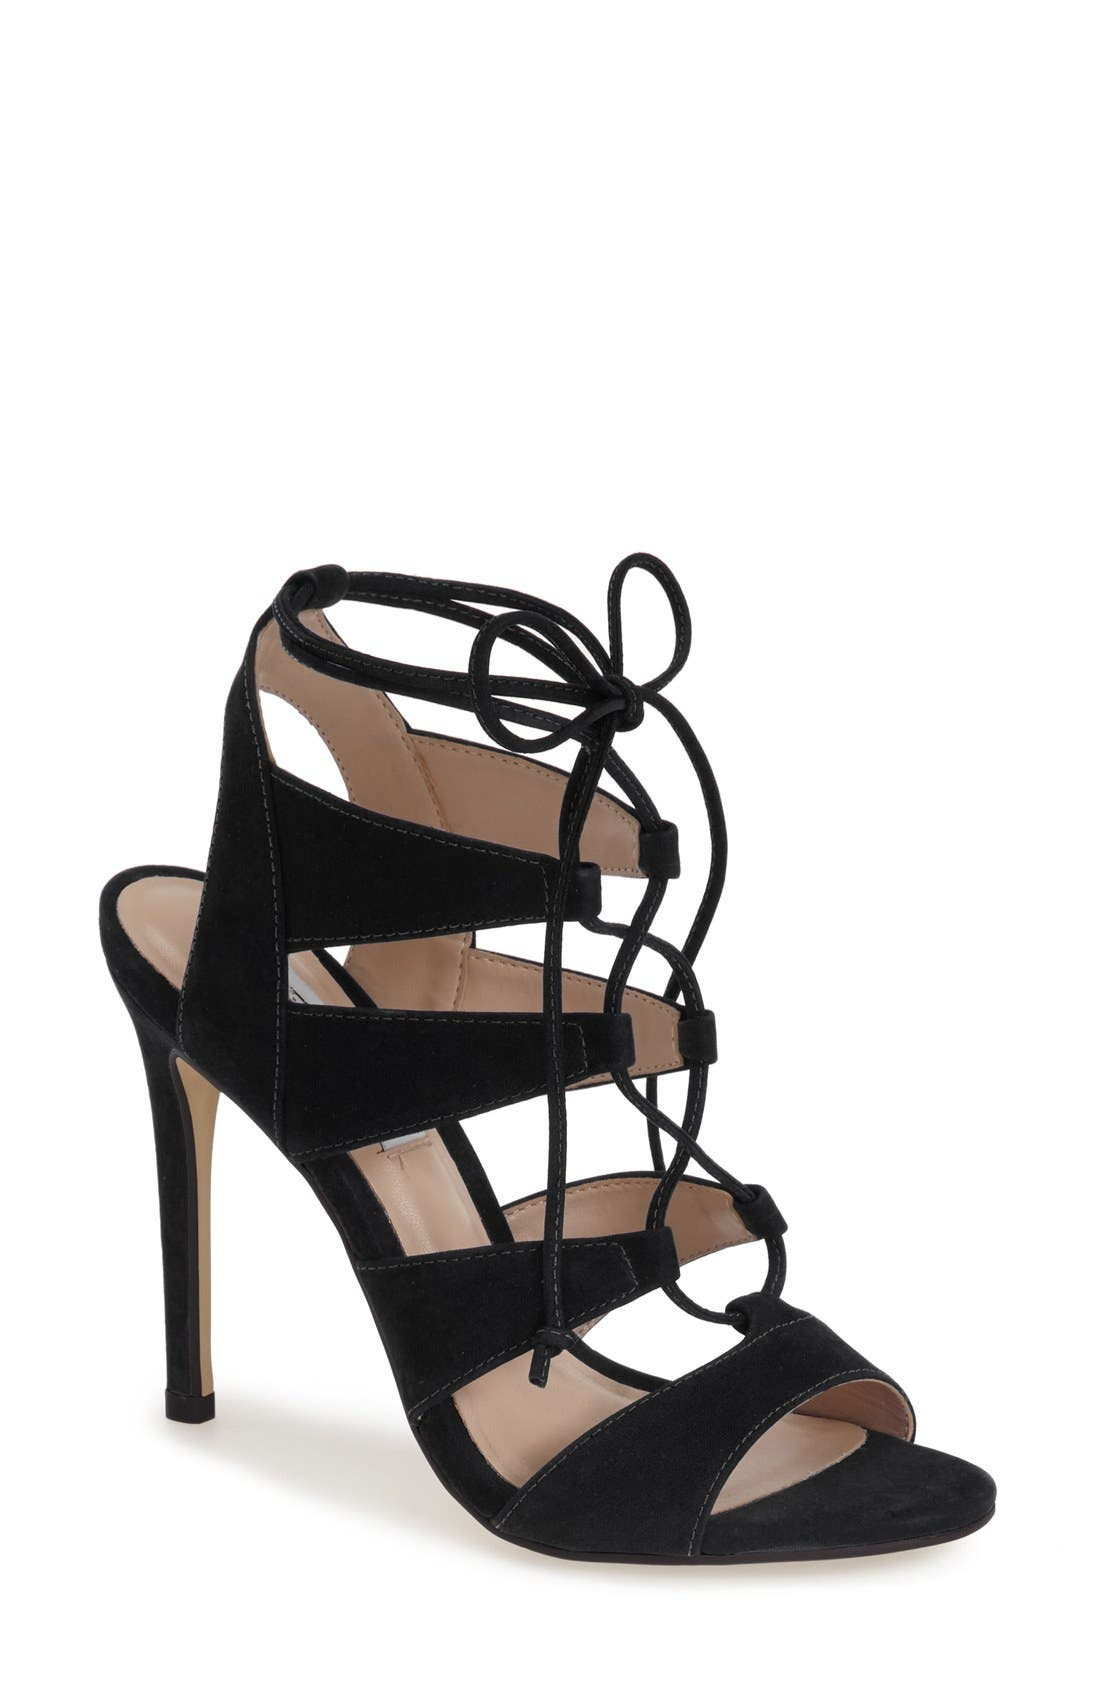 Alternate Image 1 Selected - Steve Madden 'Sandalia' Sandal (Women)